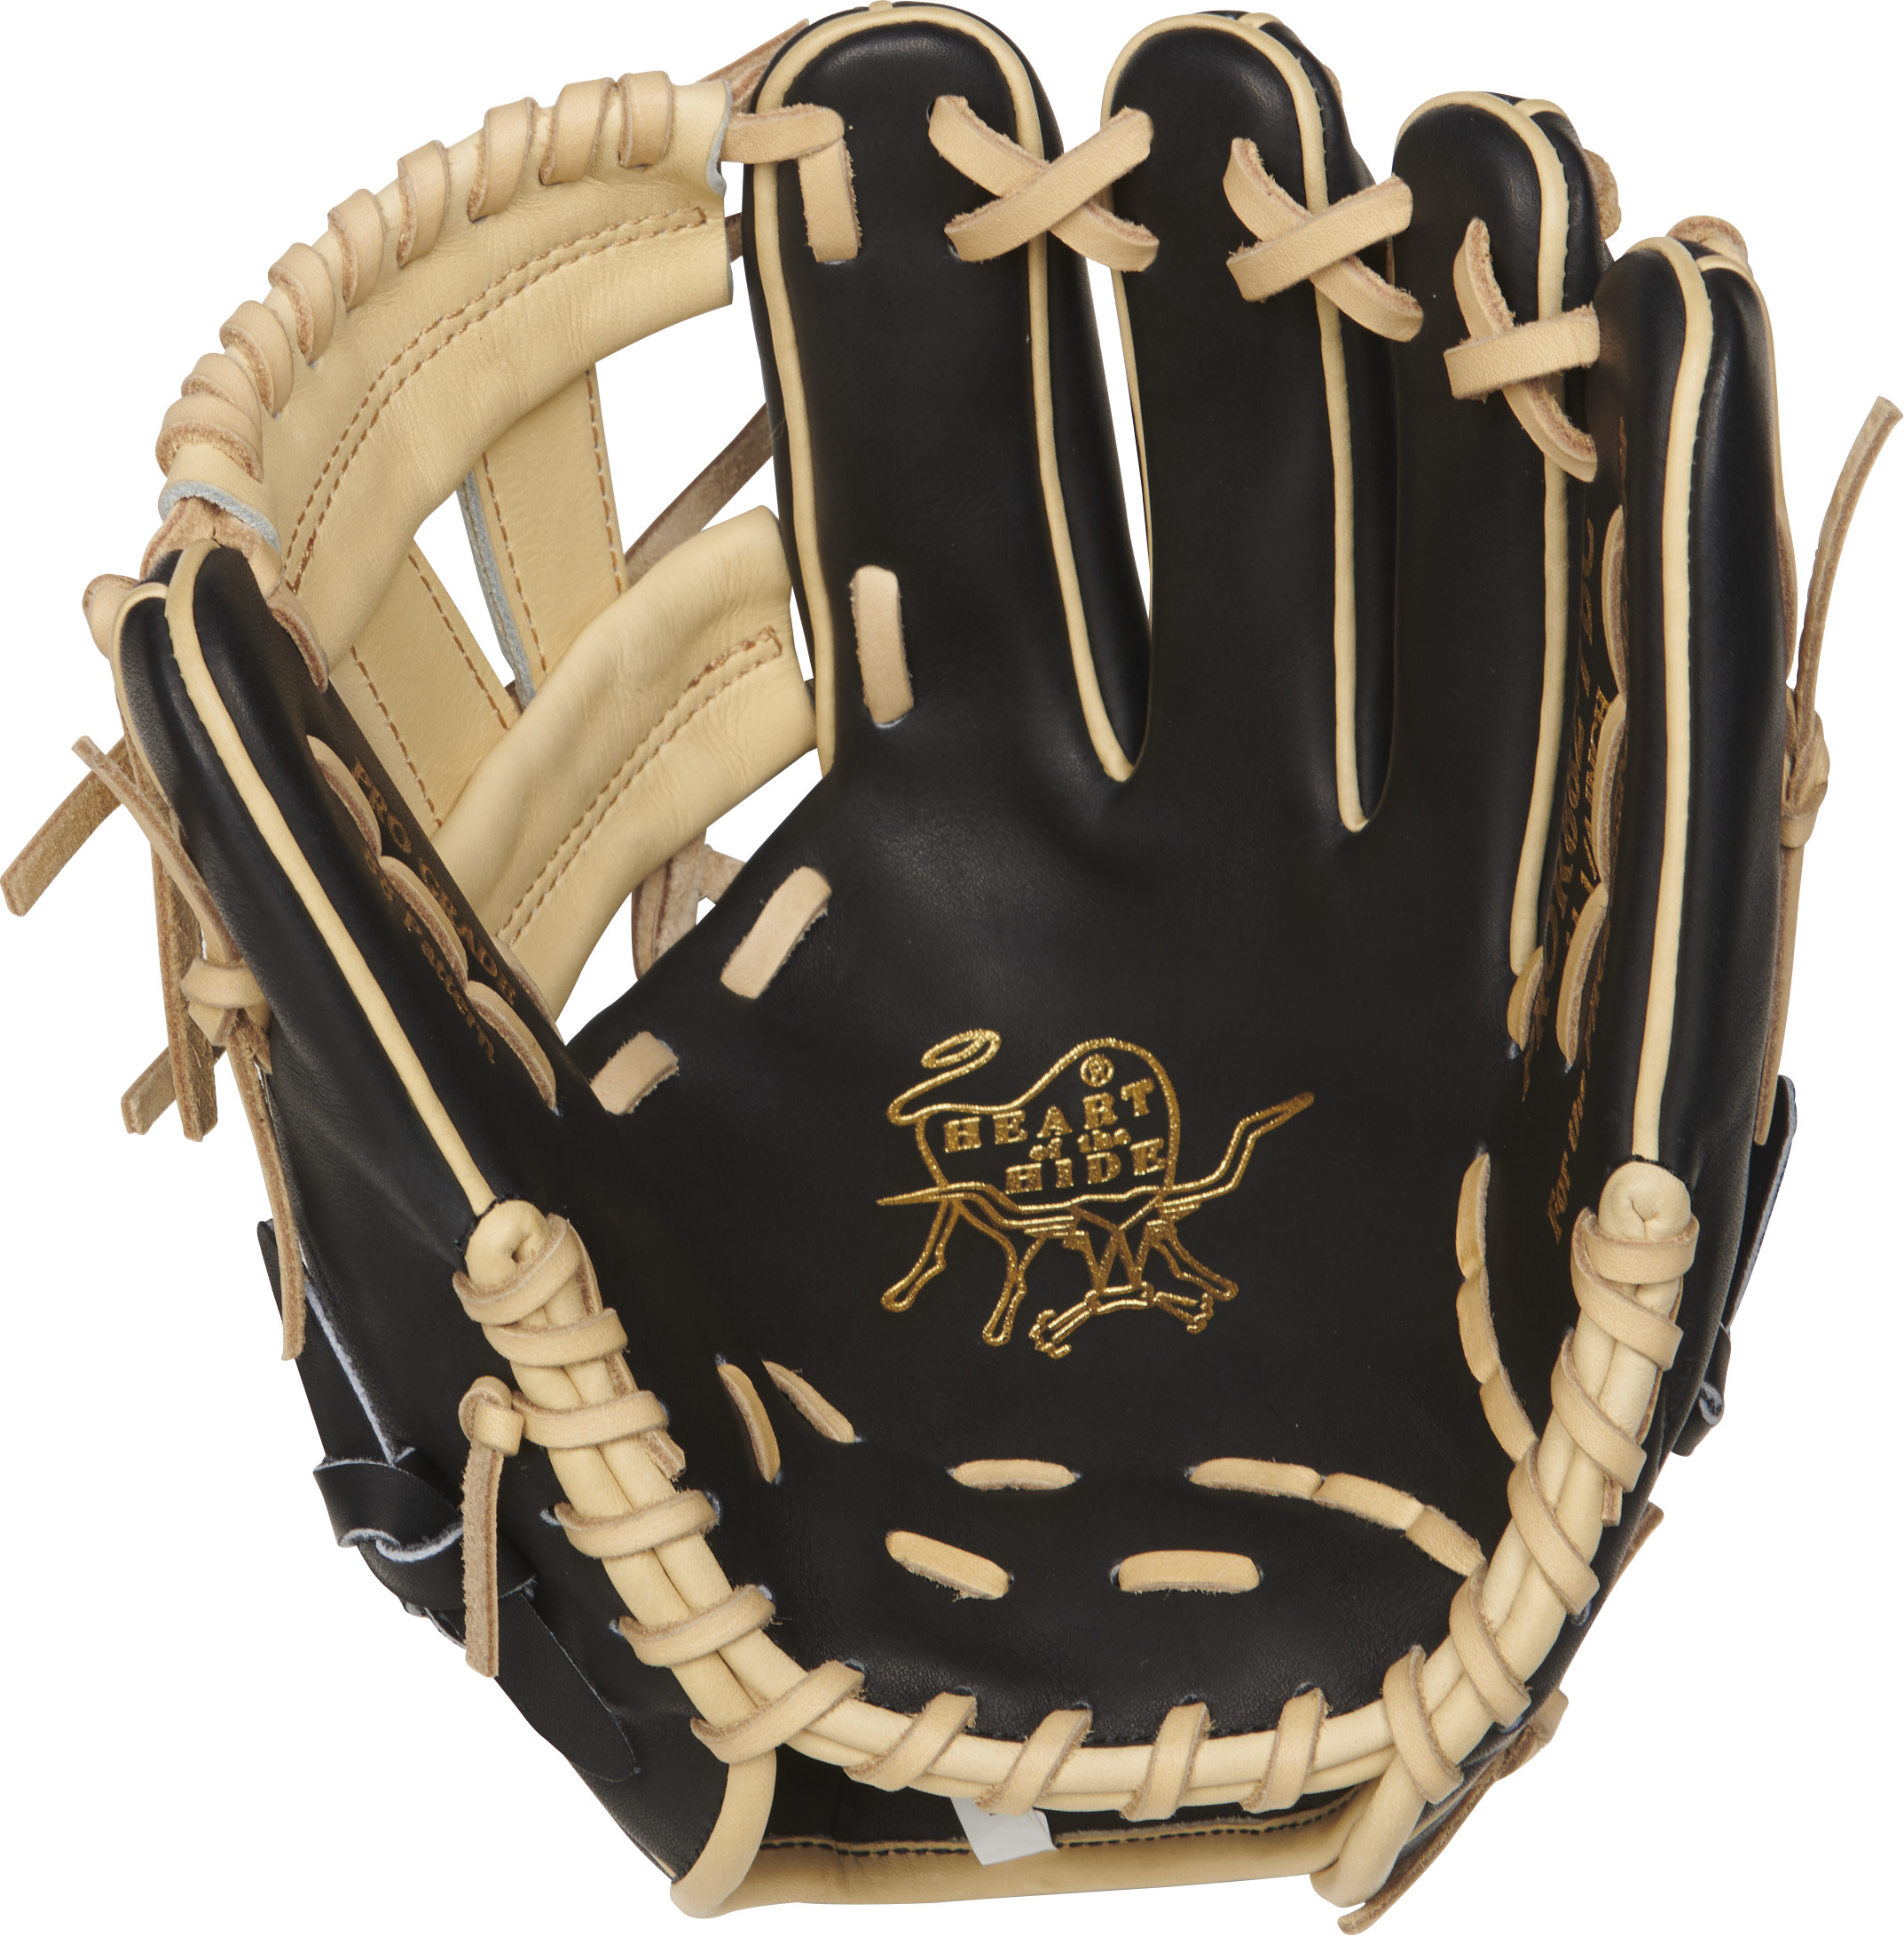 http://www.bestbatdeals.com/images/gloves/rawlings/PROR882-7BC-1.jpg